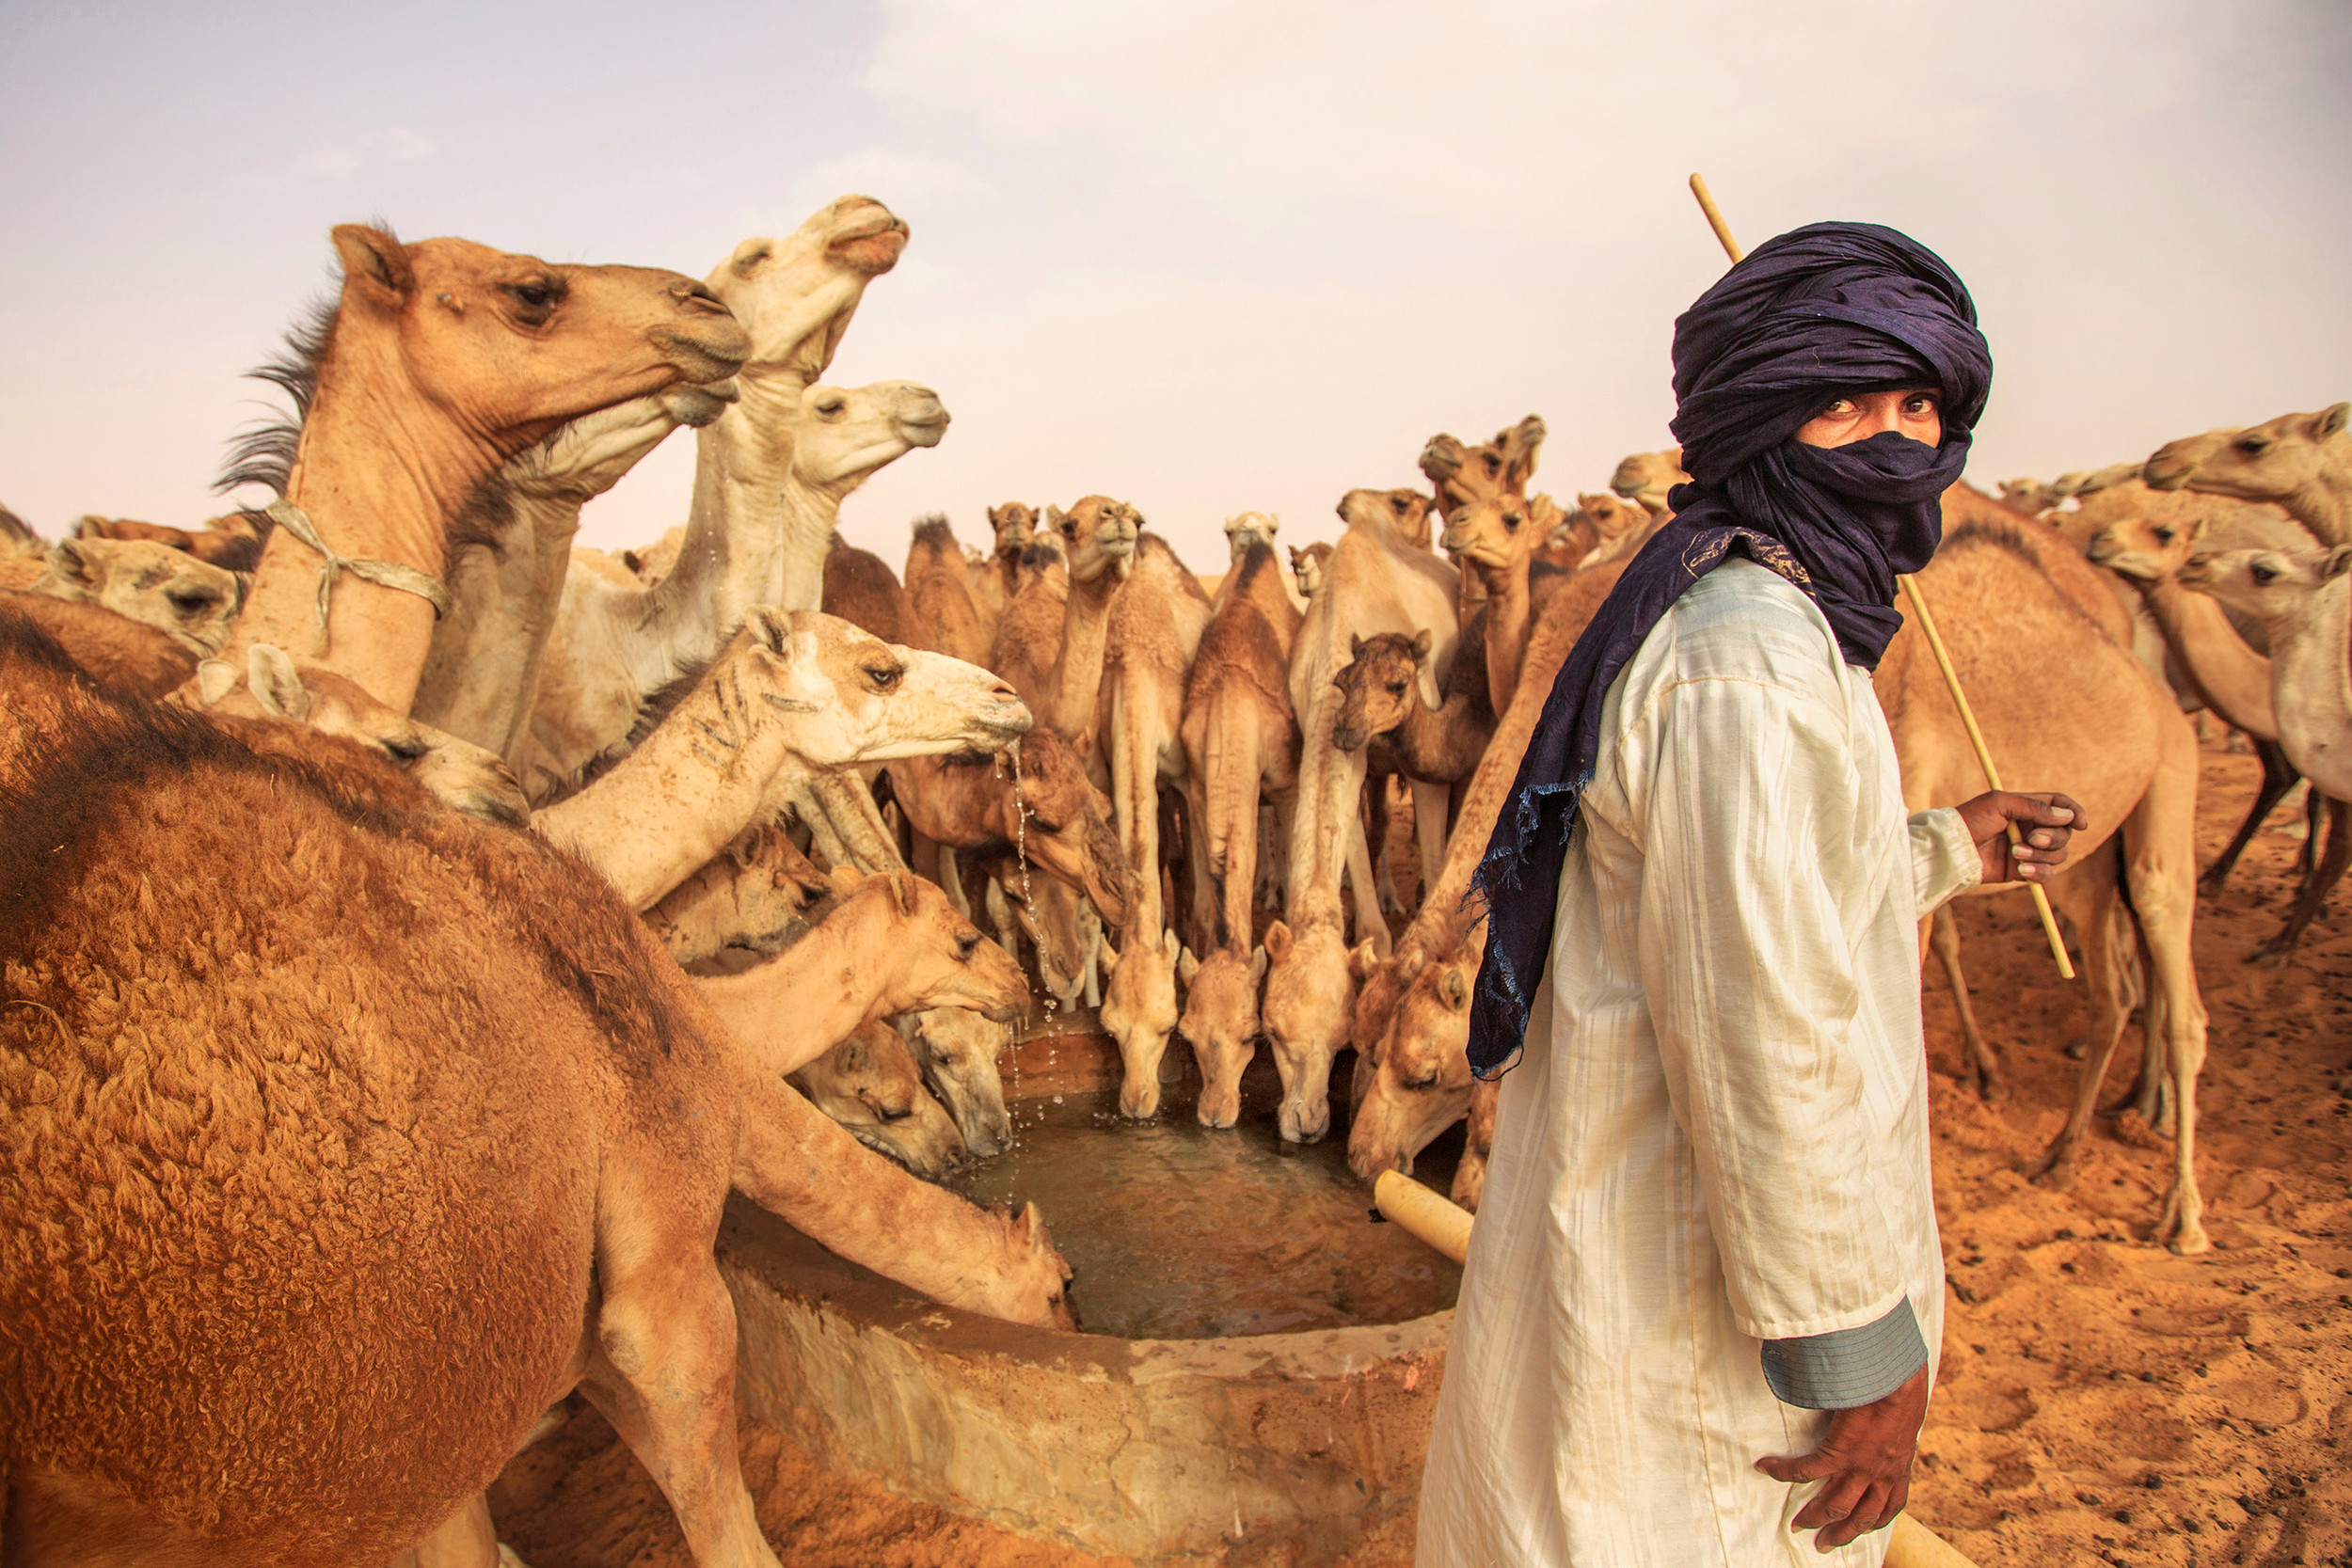 The Sahara, Northern Mauritania - 2013 | Canon 5D MKIII, 16-35mm@16mm, f/4, ISO 100, 1/1000 sec